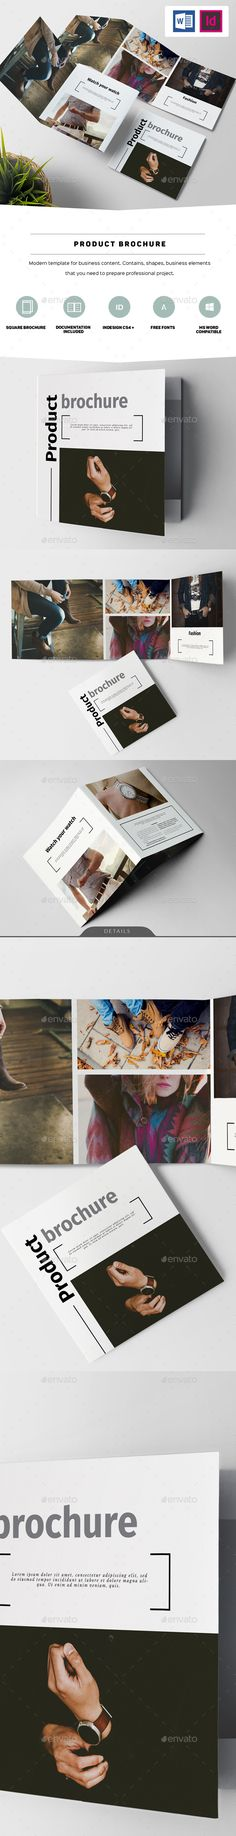 Product Brochure — InDesign INDD #clean #flexible • Download ➝ https://graphicriver.net/item/product-brochure/19440016?ref=pxcr